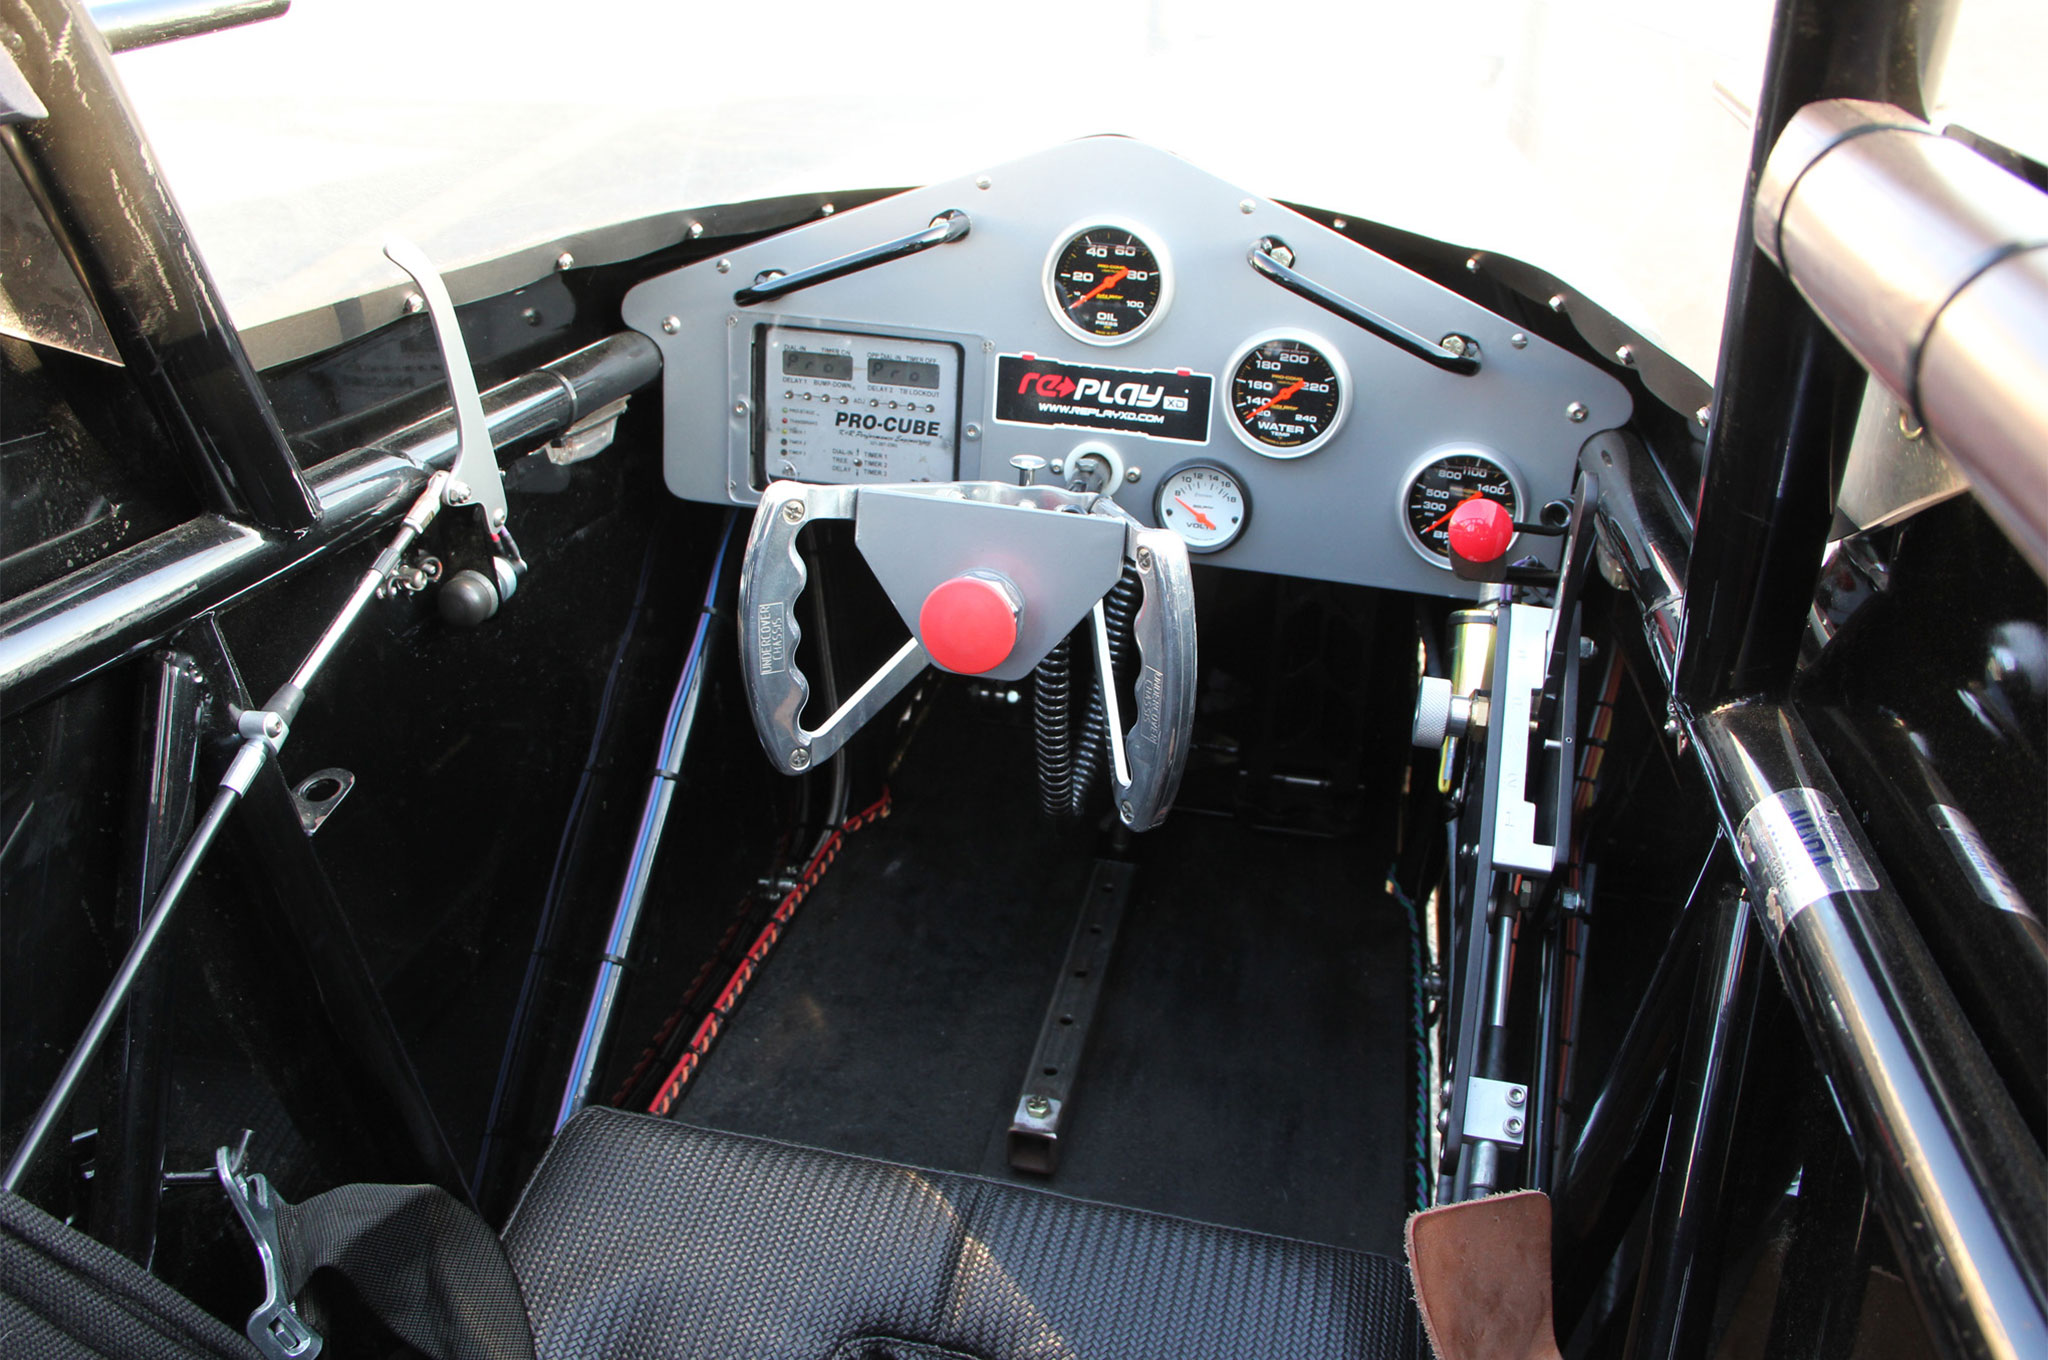 In the center of the wheel is the kill switch. To the right is the unused trans brake button and shifter. The small black button on the left starts the car.